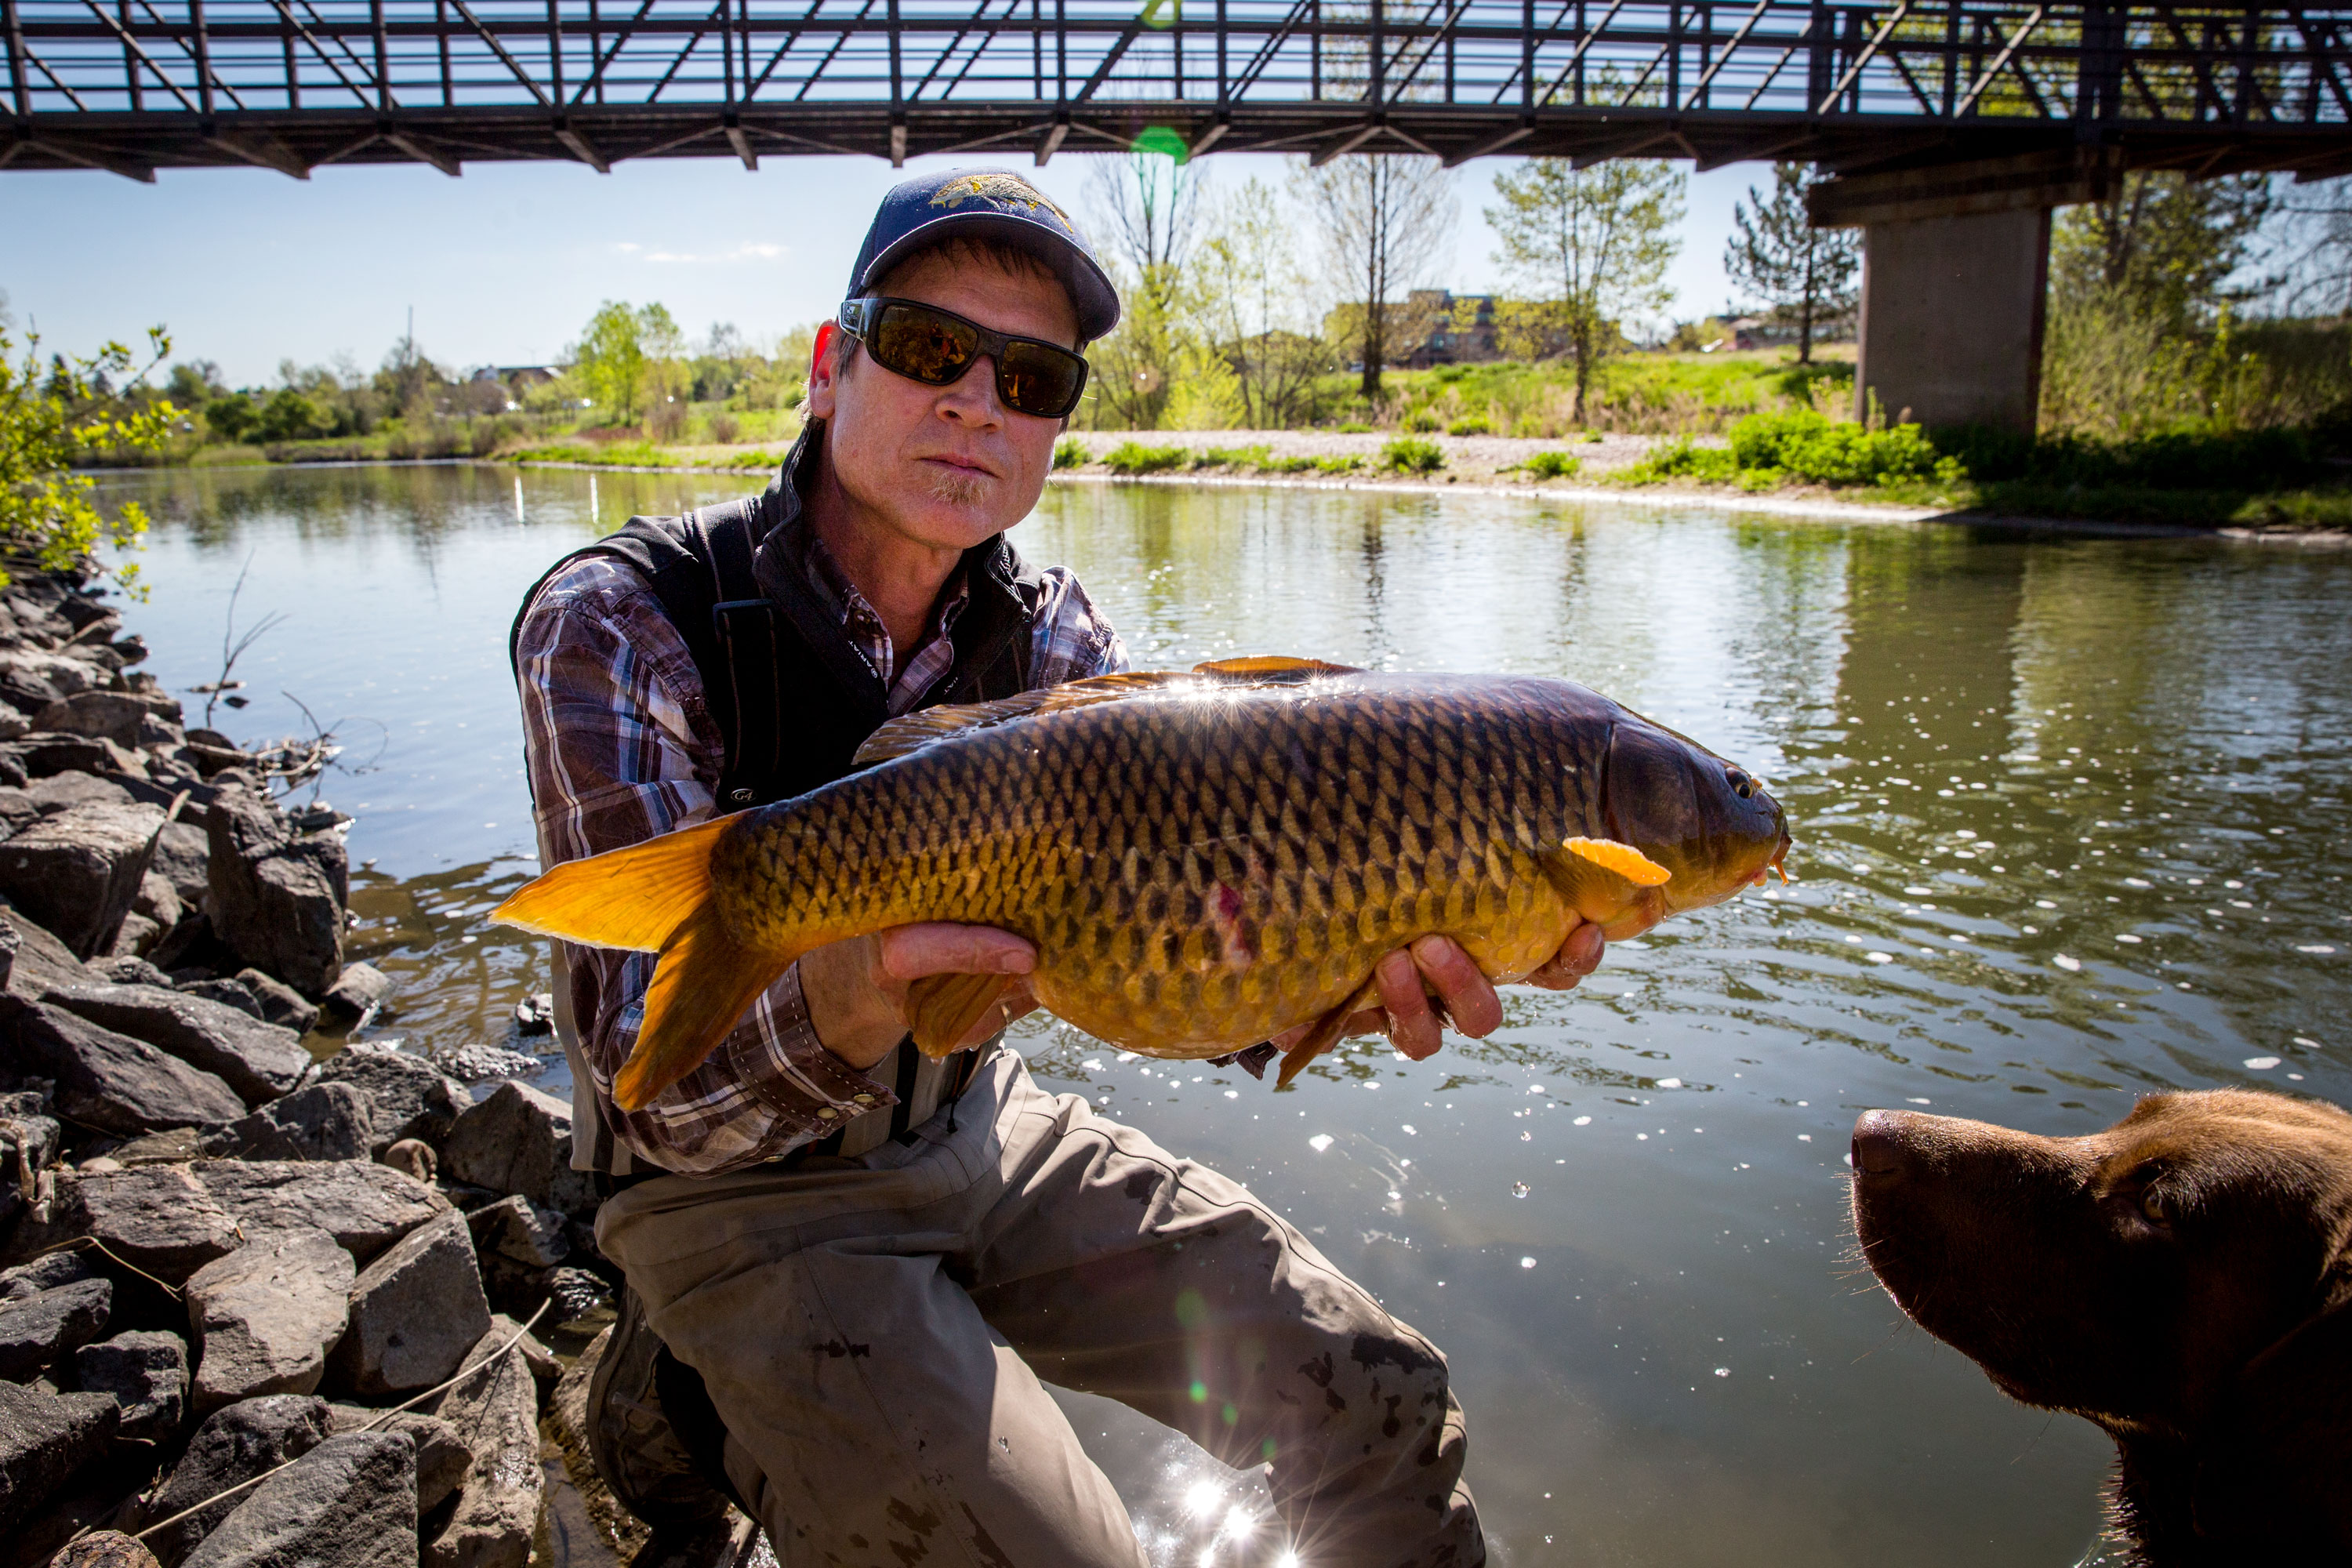 <p>Dan Lundahl handles a carp he caught Monday morning May 13, 2019 on the South Platte in Littleton, while his dog Ruger looks on.</p>